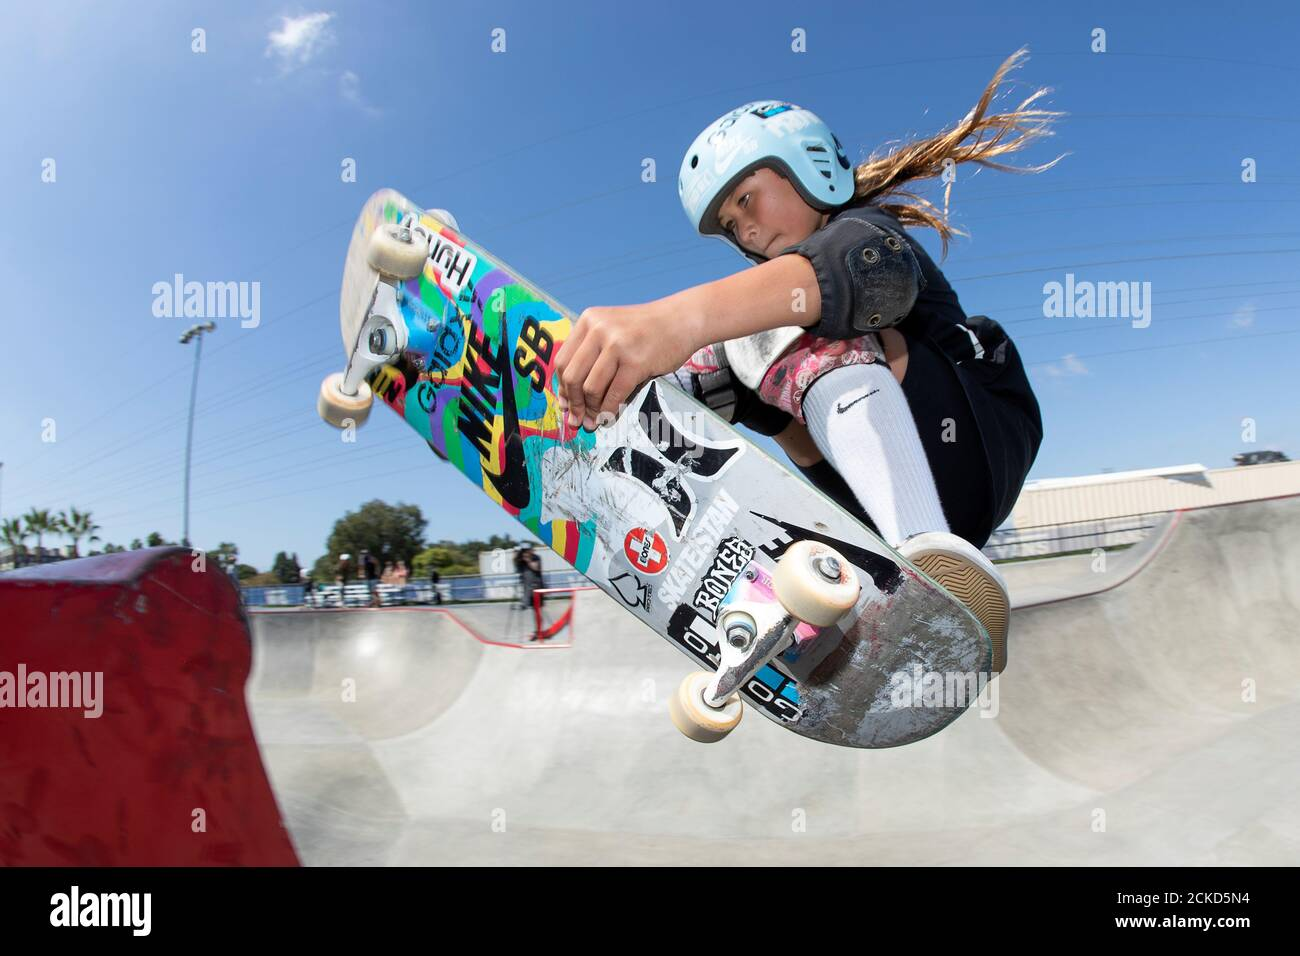 Eleven-year-old skateboarder Sky Brown trains to become Britain's youngest summer Olympian at a skatepark in Huntington Beach, California, U.S., September 20, 2019. Picture taken September 20, 2019.    REUTERS/Mike Blake Stock Photo